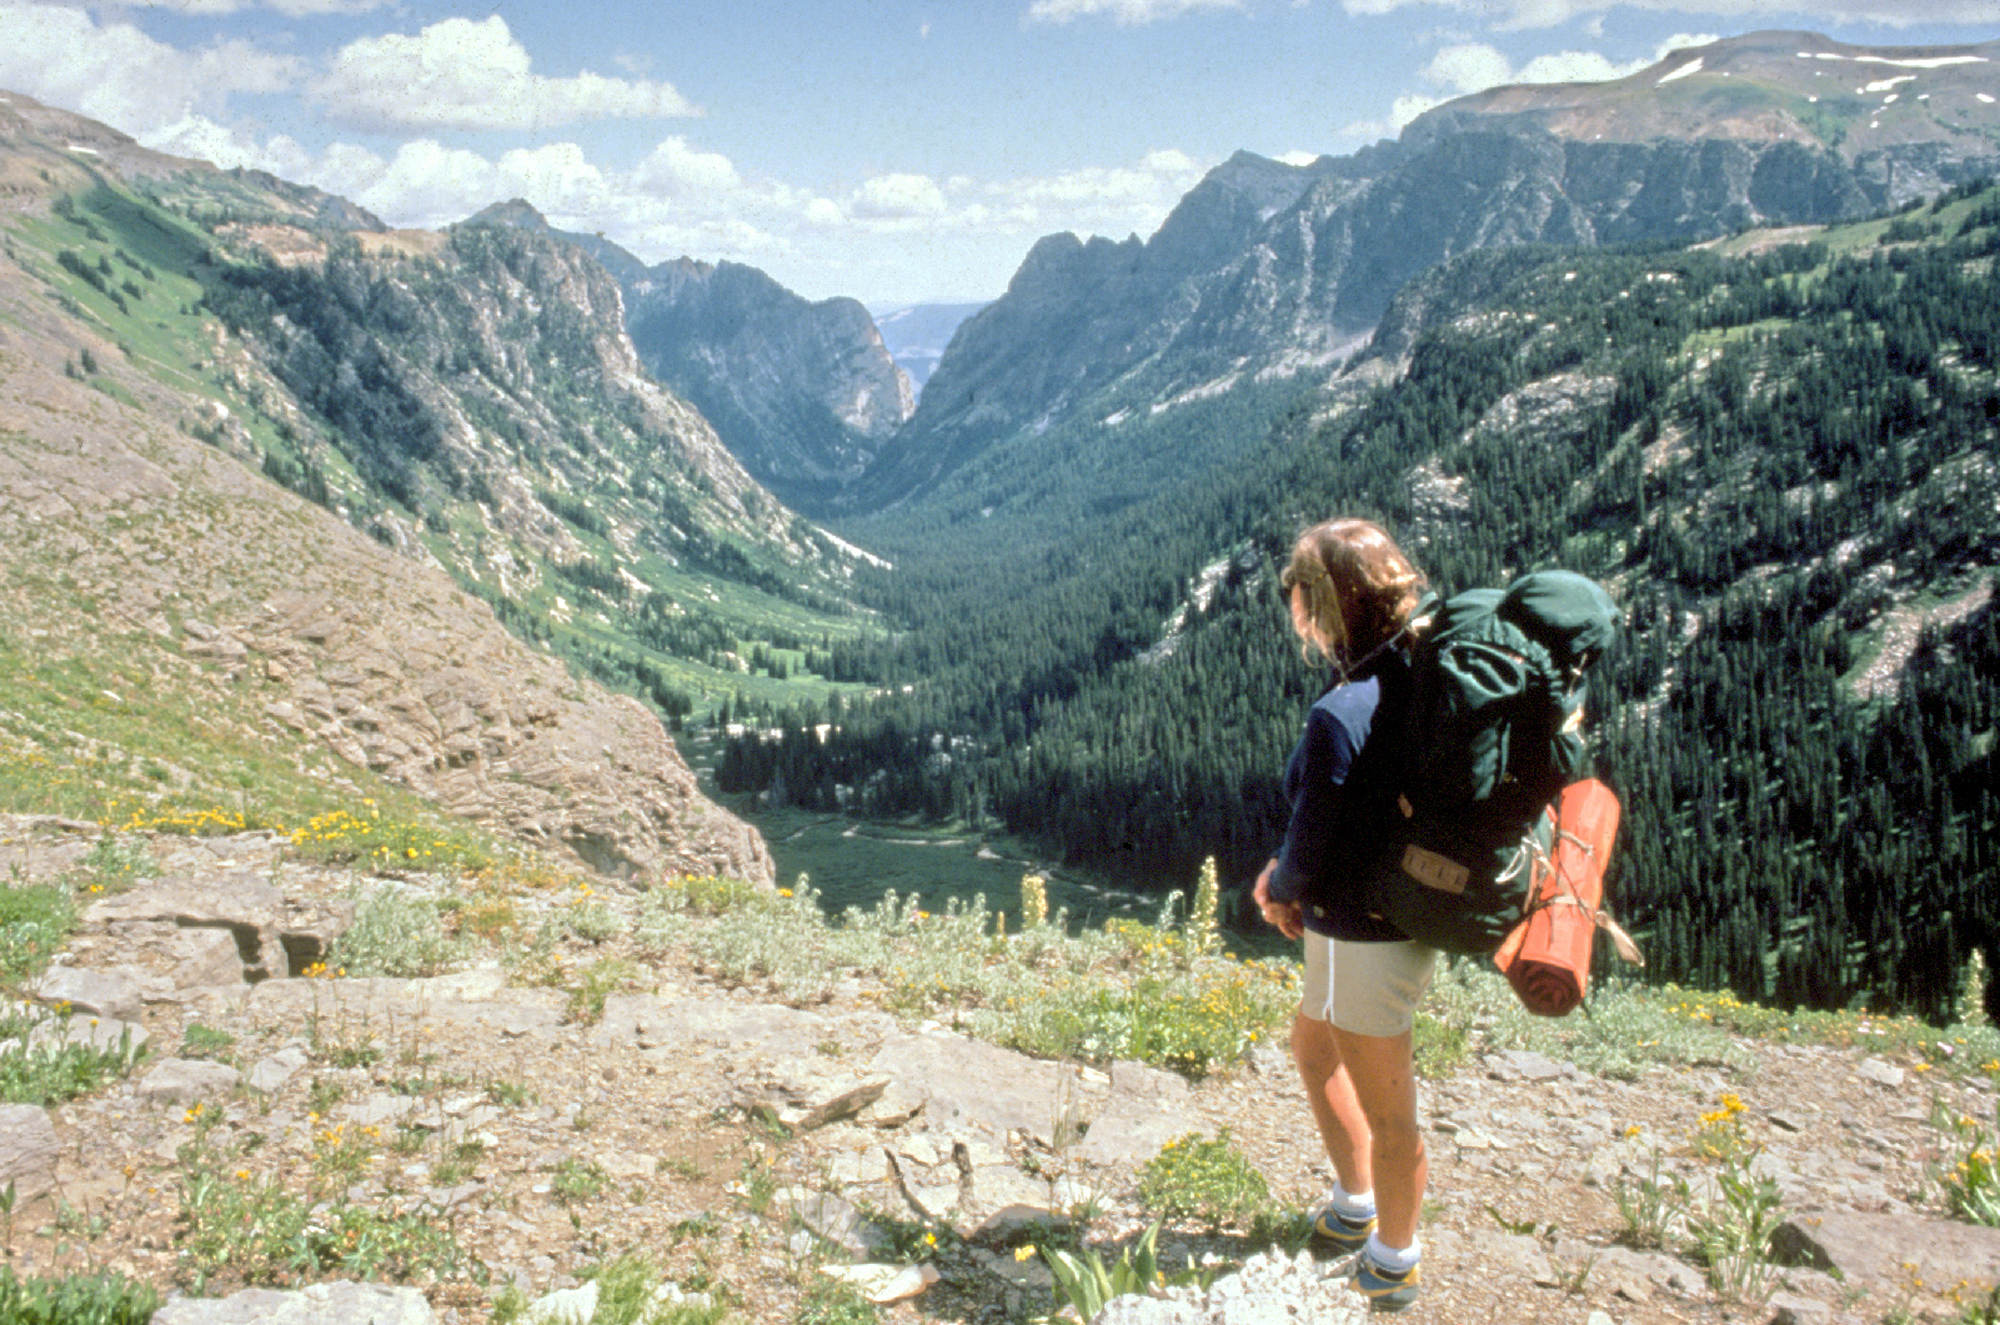 http://upload.wikimedia.org/wikipedia/commons/2/20/Backpacking_in_Grand_Teton_NP-NPS.jpg